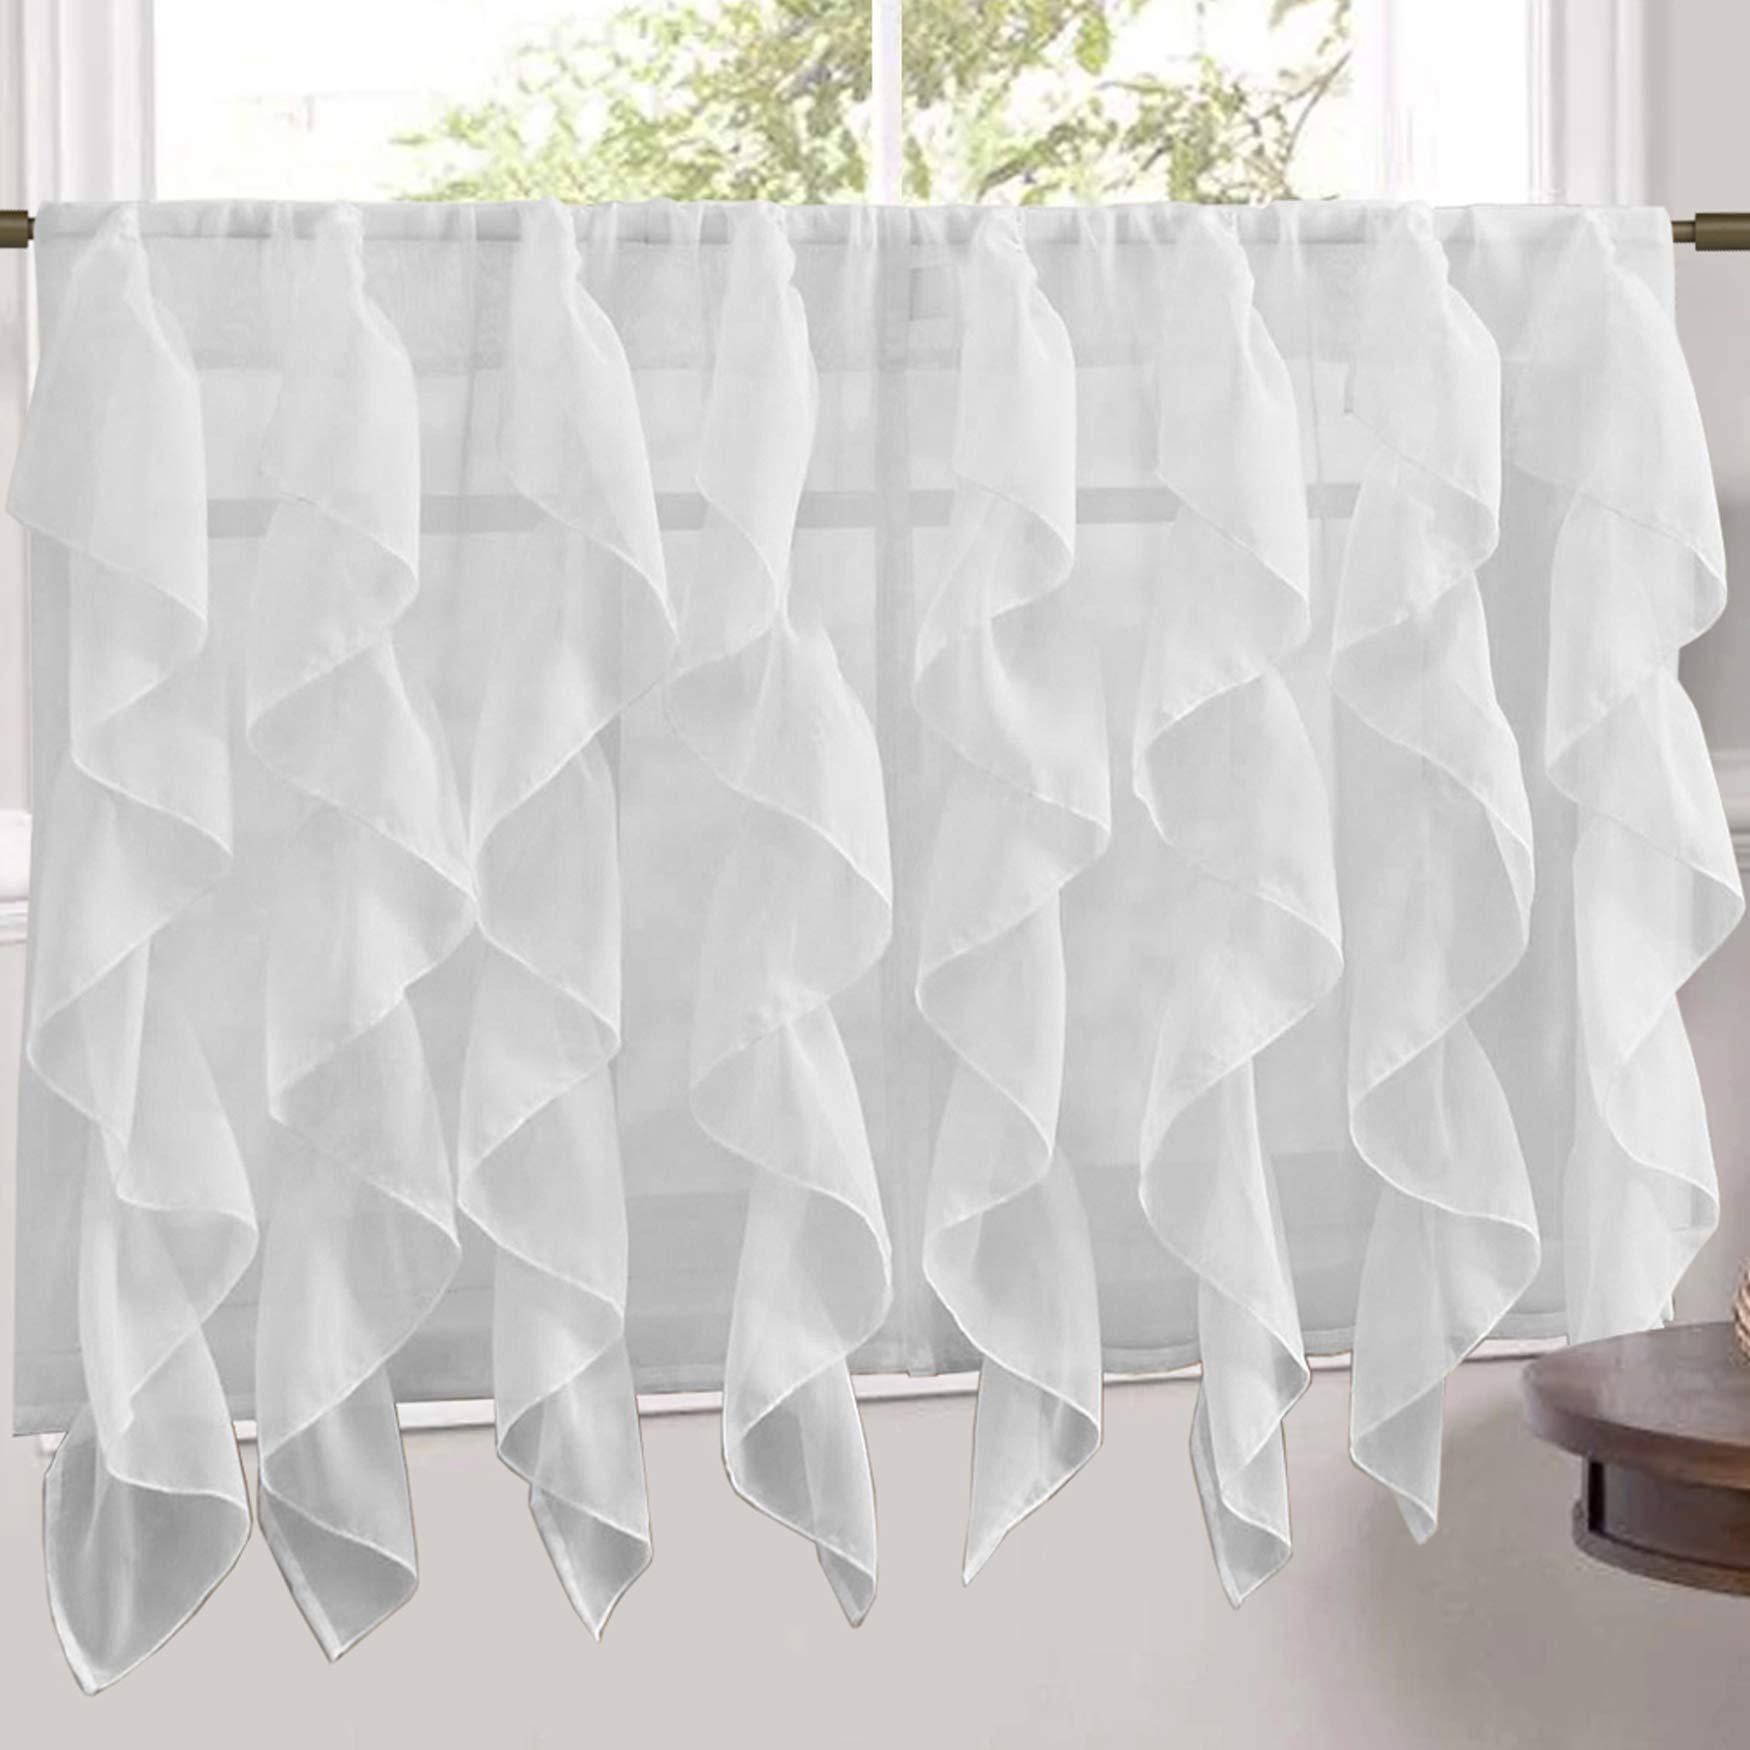 Sweet Home Collection Veritcal Kitchen Curtain Sheer Cascading Ruffle Waterfall Window Treatment - Choice of Valance, 24'' or 36'' Teir, and Kit Tier Pair Only, White